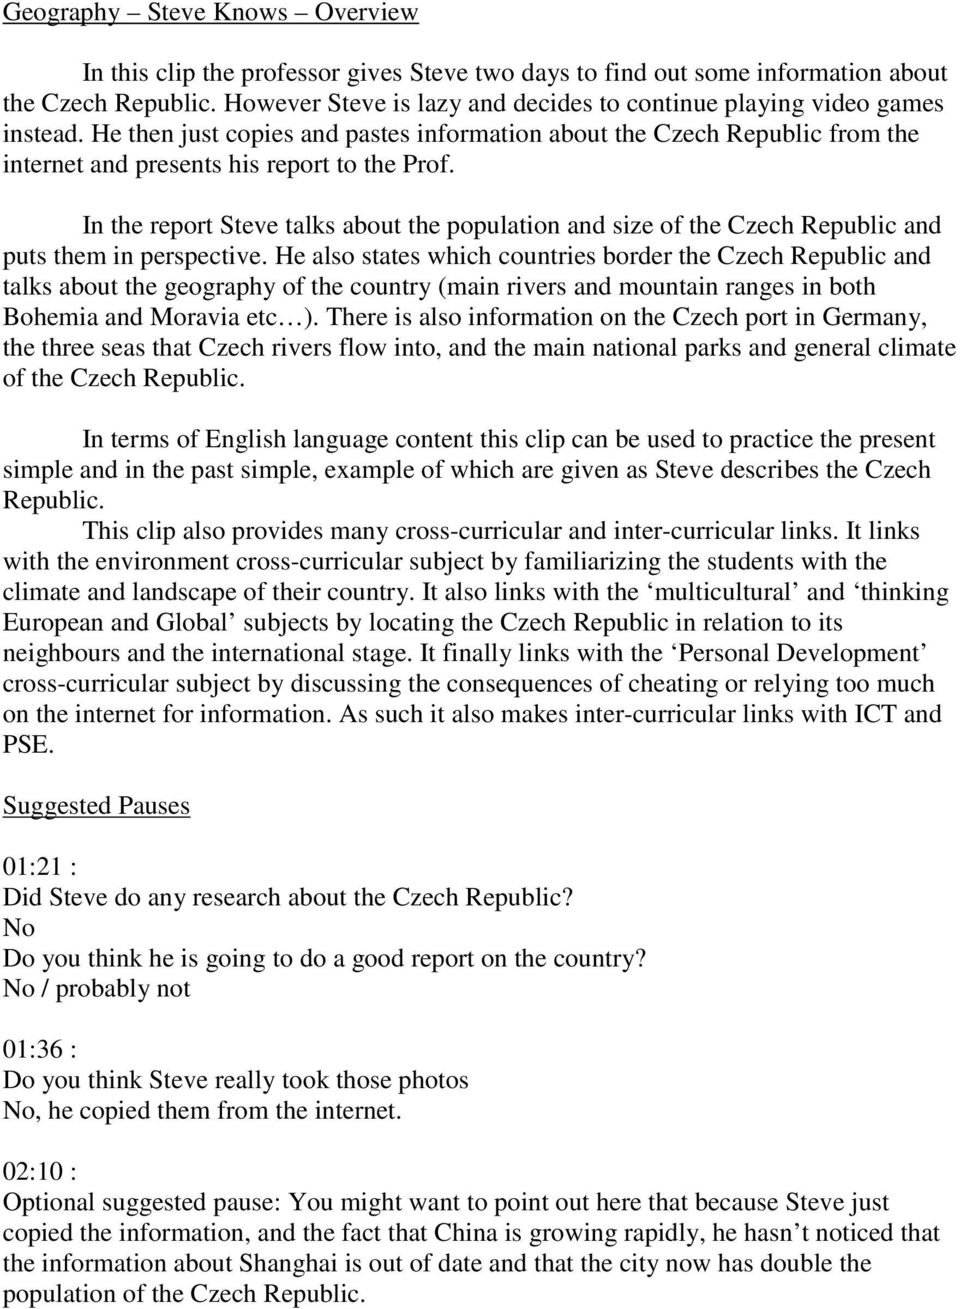 In the report Steve talks about the population and size of the Czech Republic and puts them in perspective.